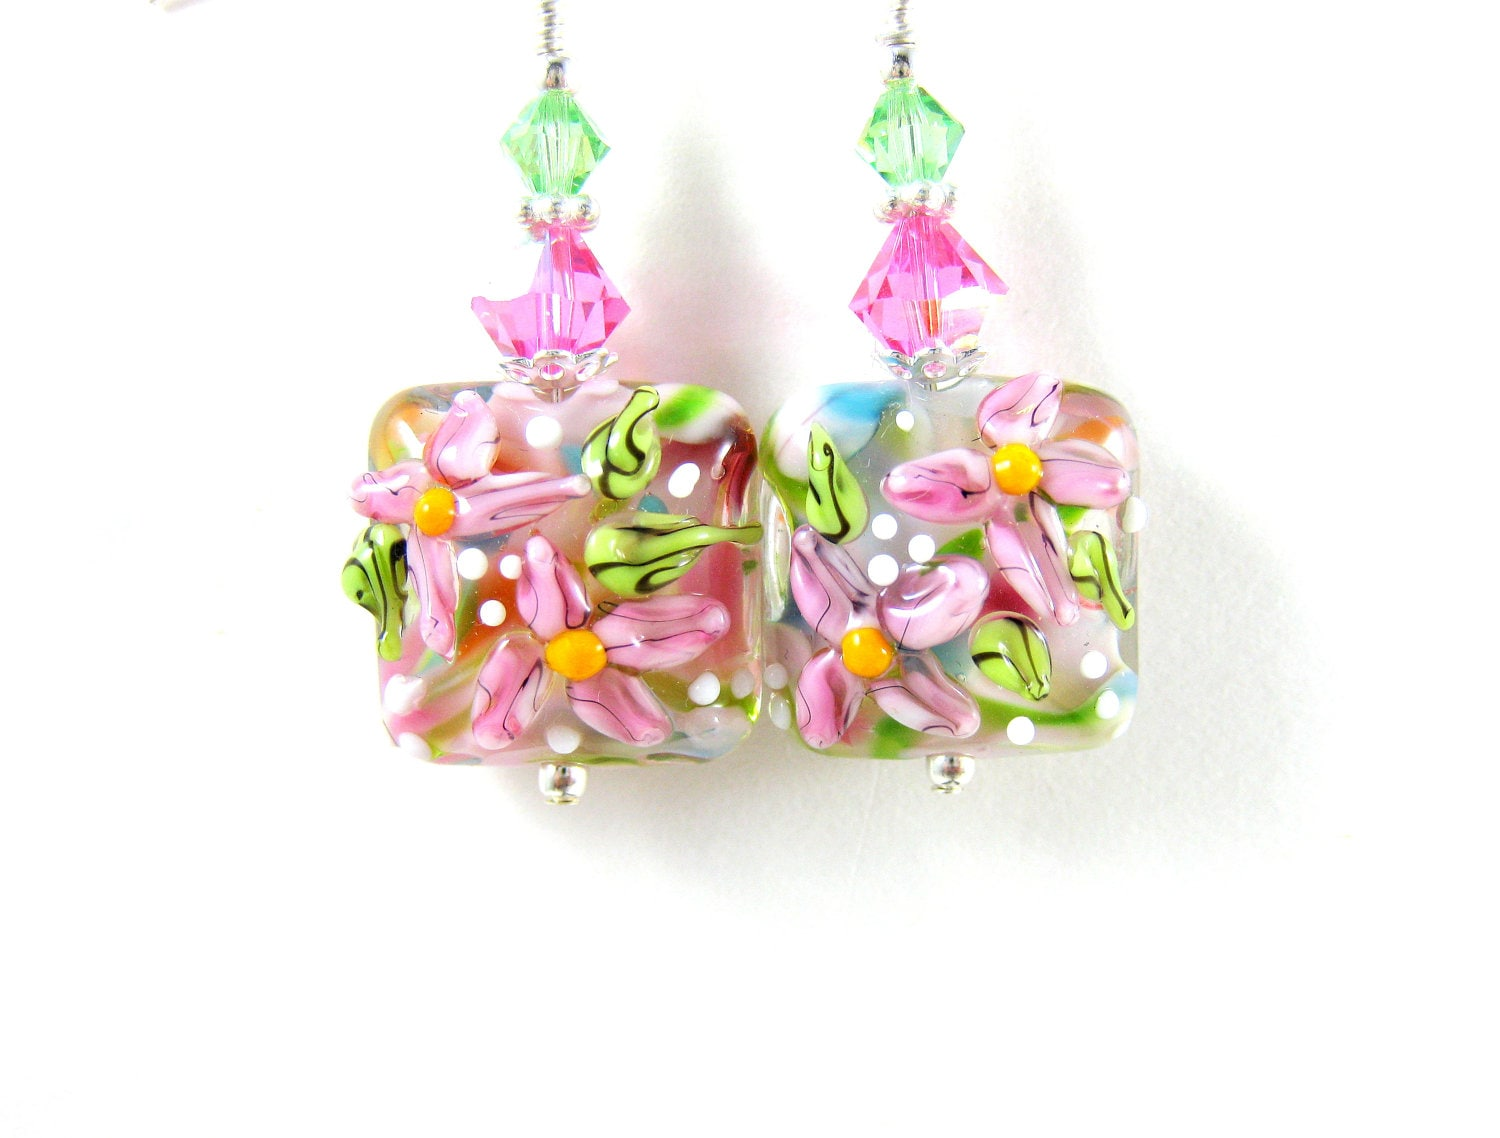 Pastel Pink Flower Earrings, Floral Lampwork Earrings, Pink Beadwork Earrings, Pastel Earrings, Dangle Earrings - Flower Bed - GlassRiverJewelry